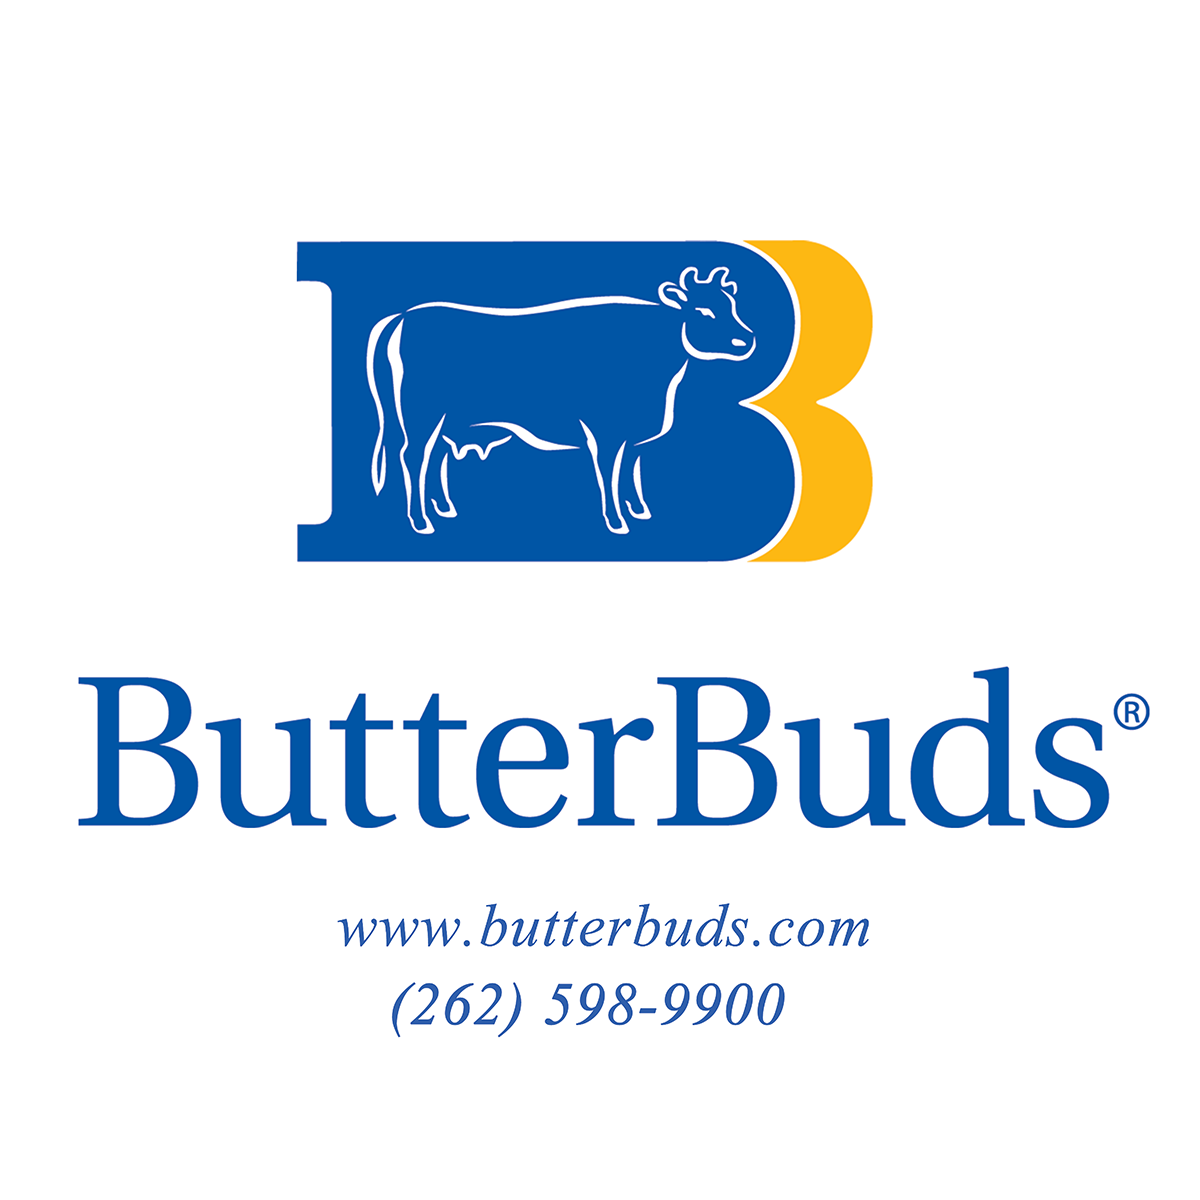 Butter Buds Inc.